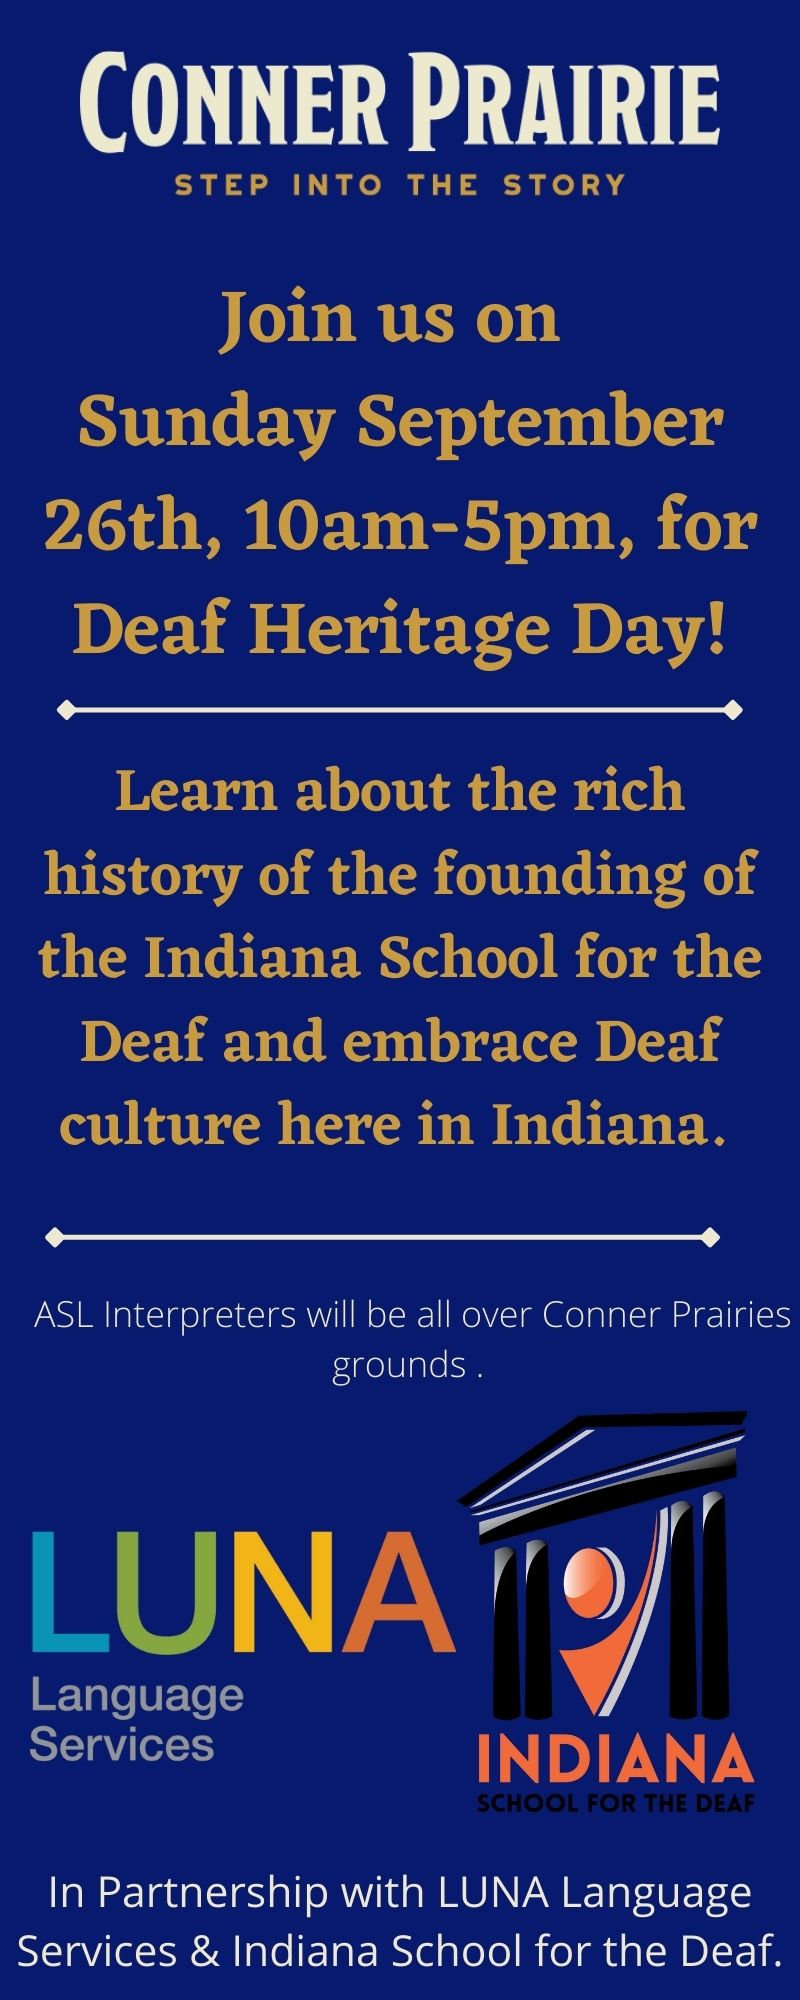 Deaf Heritage Day at Conner Prairie